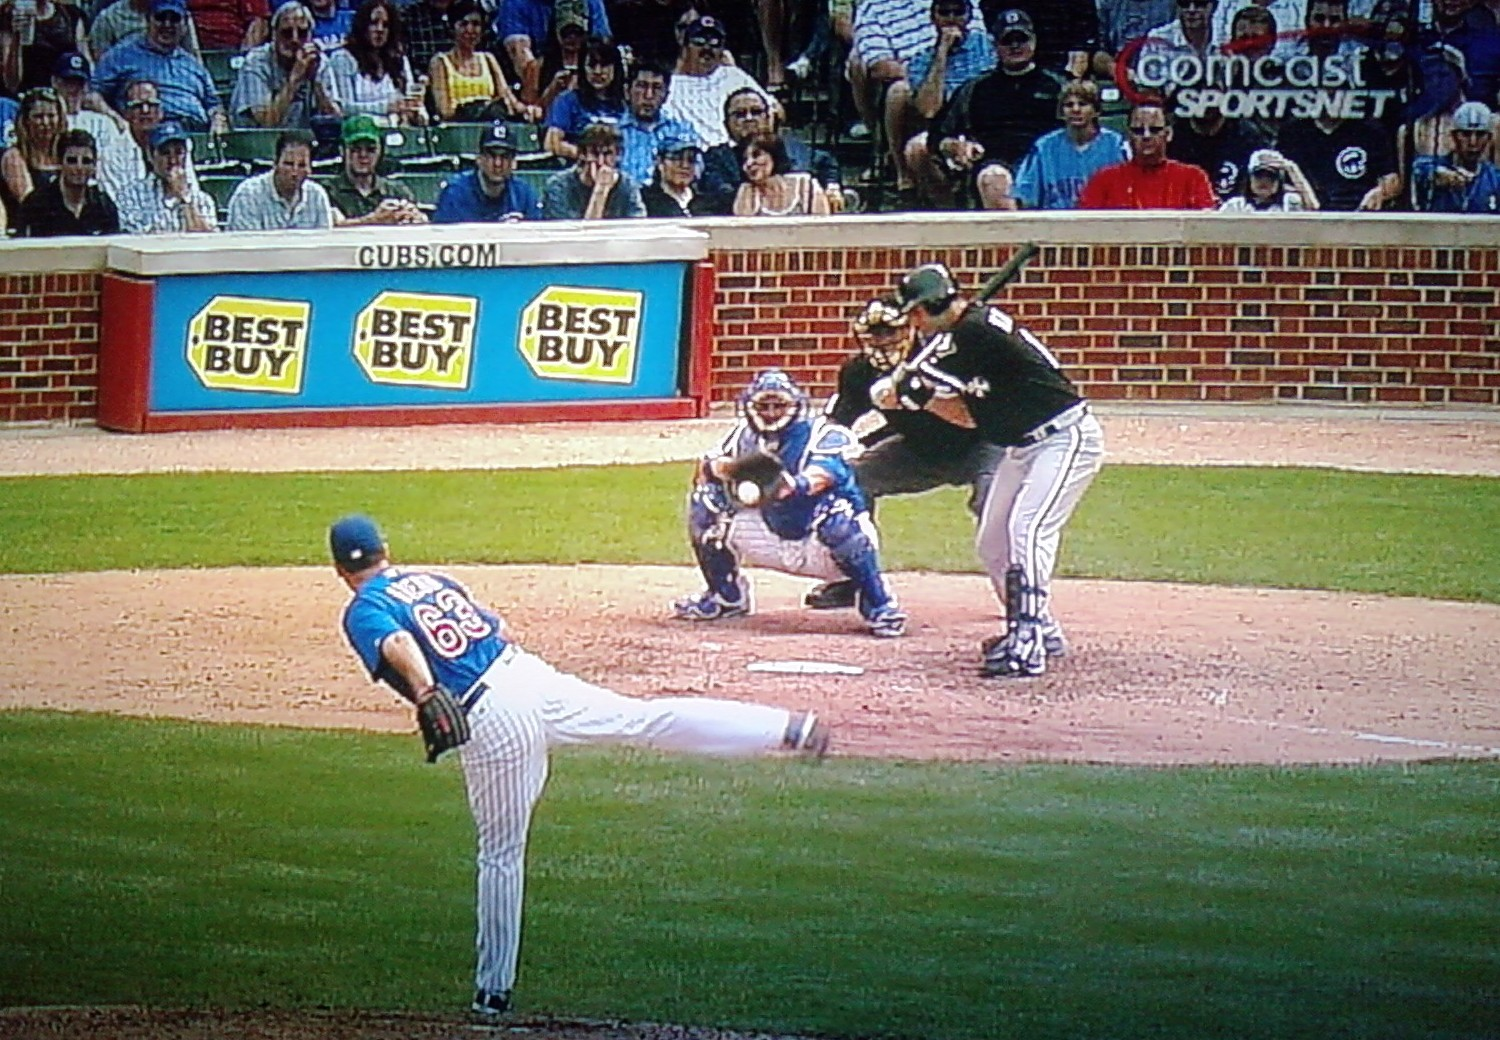 Konerko looks at a strike